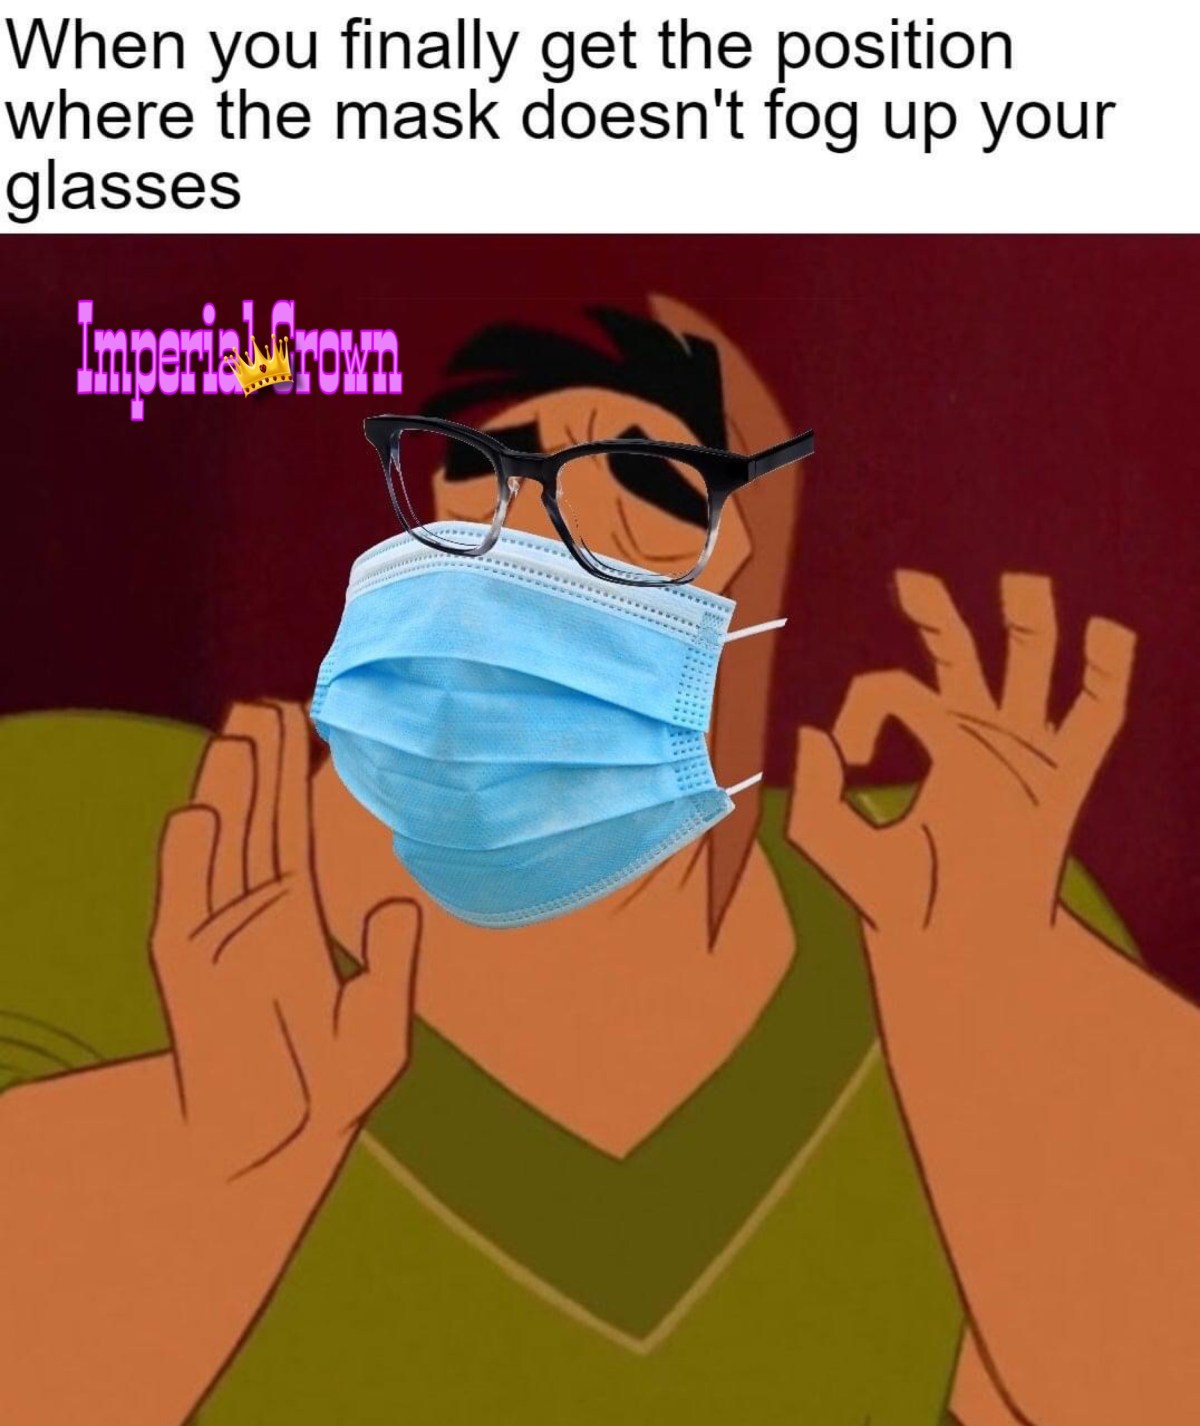 When you finally get the position where the mask doesn't fog up your glasses